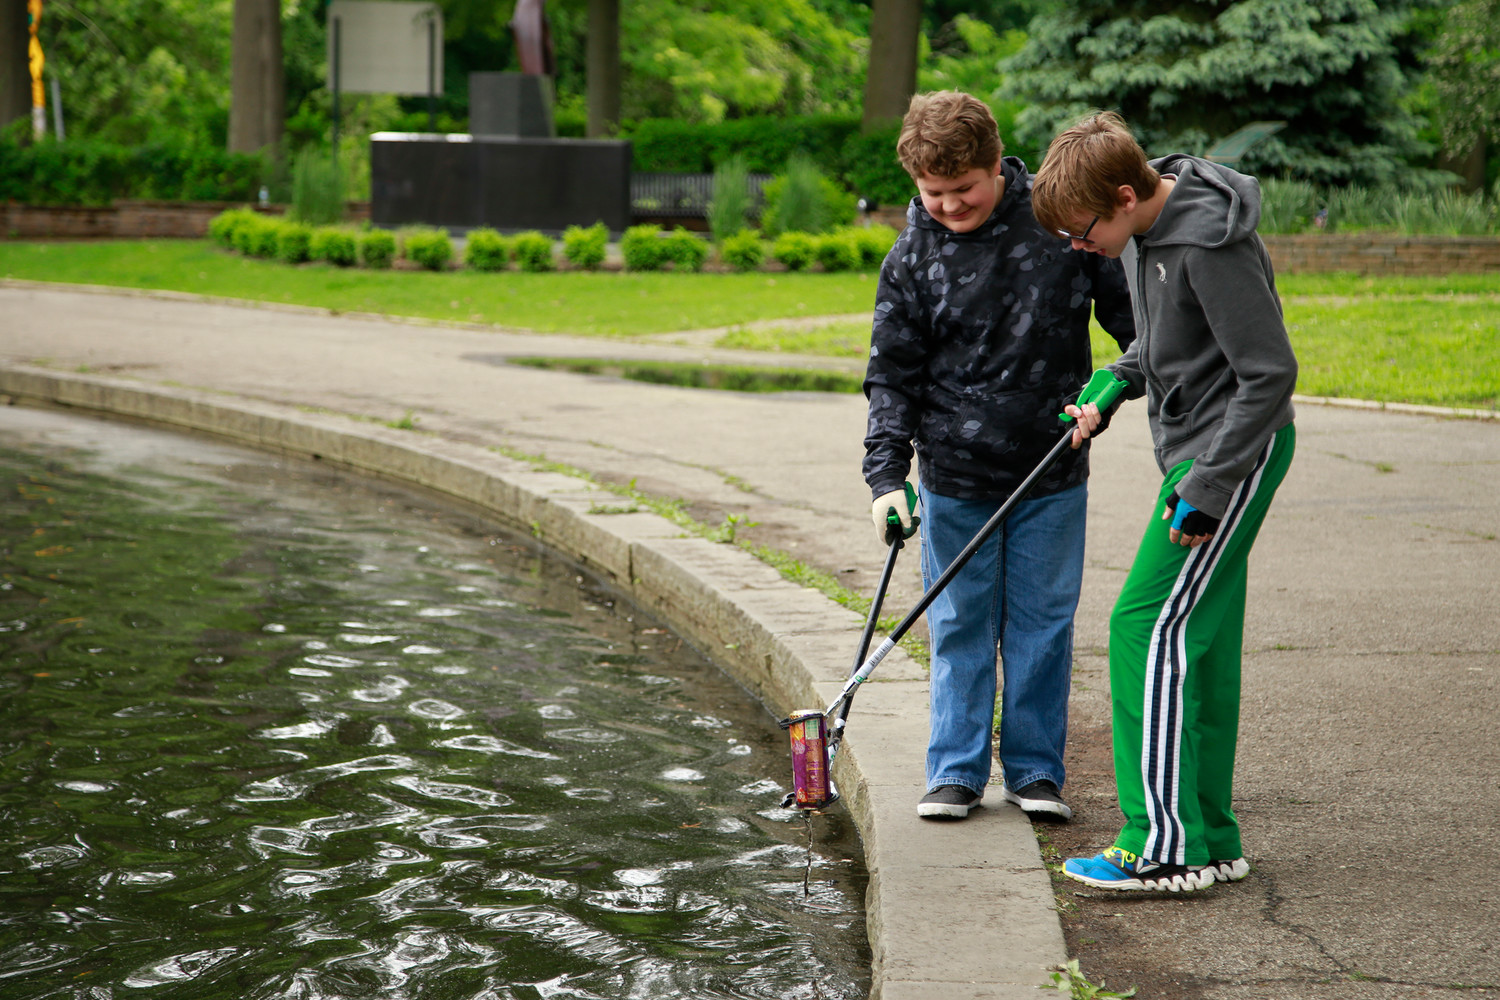 Boy Scouts KJ Fork, 13, left, and Dennis Kavanaugh, 14, removed trash from  the pond.